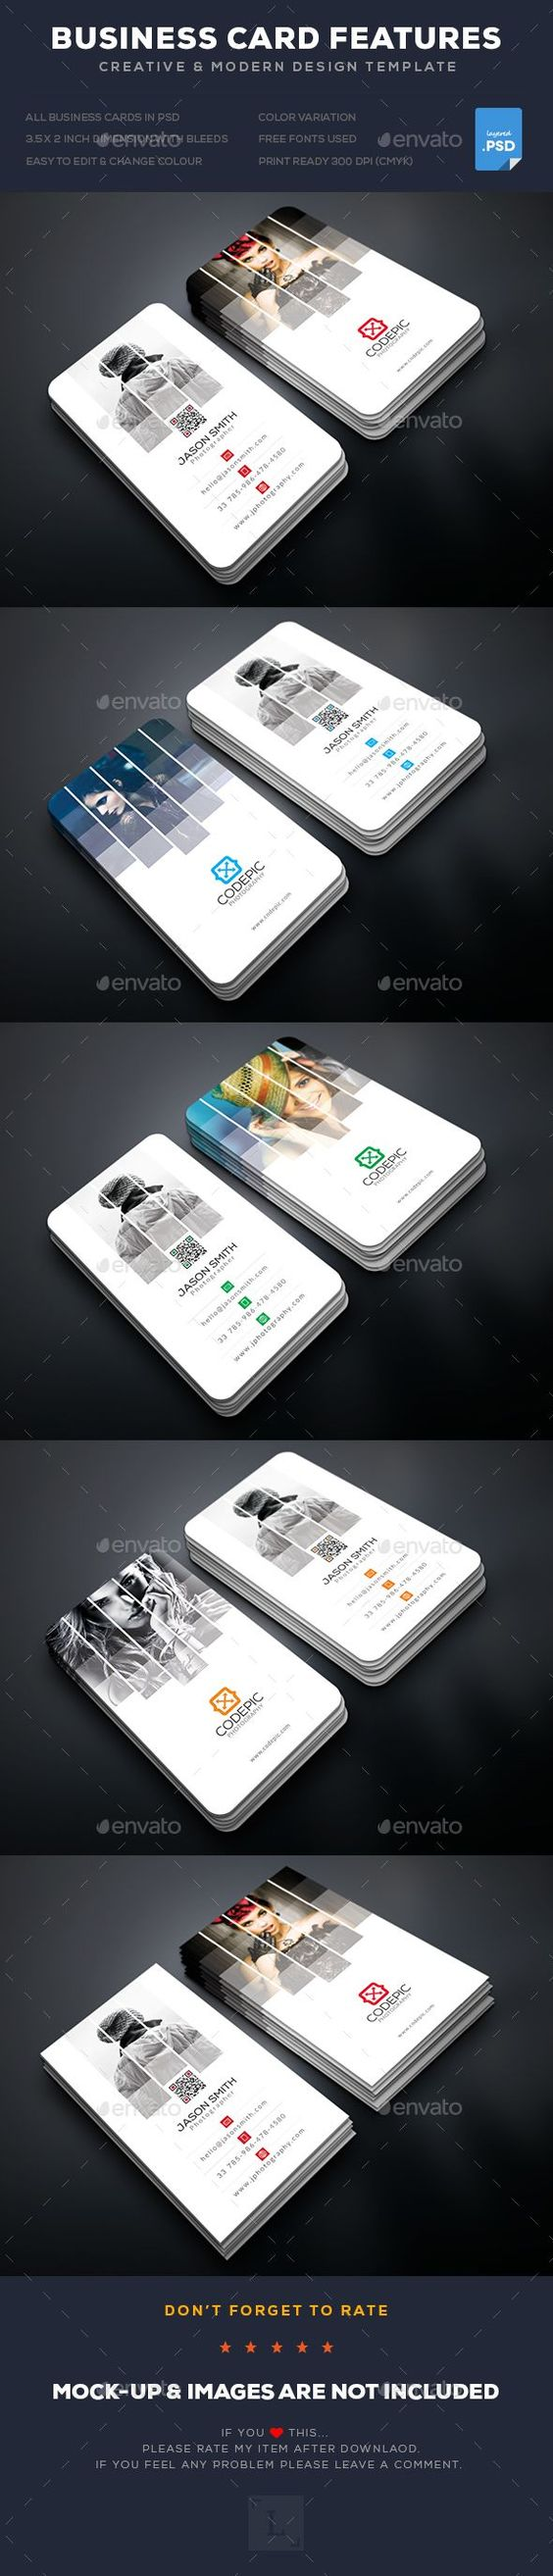 Best Card Design Images On Pinterest Business Card Design - 35 x2 business card template